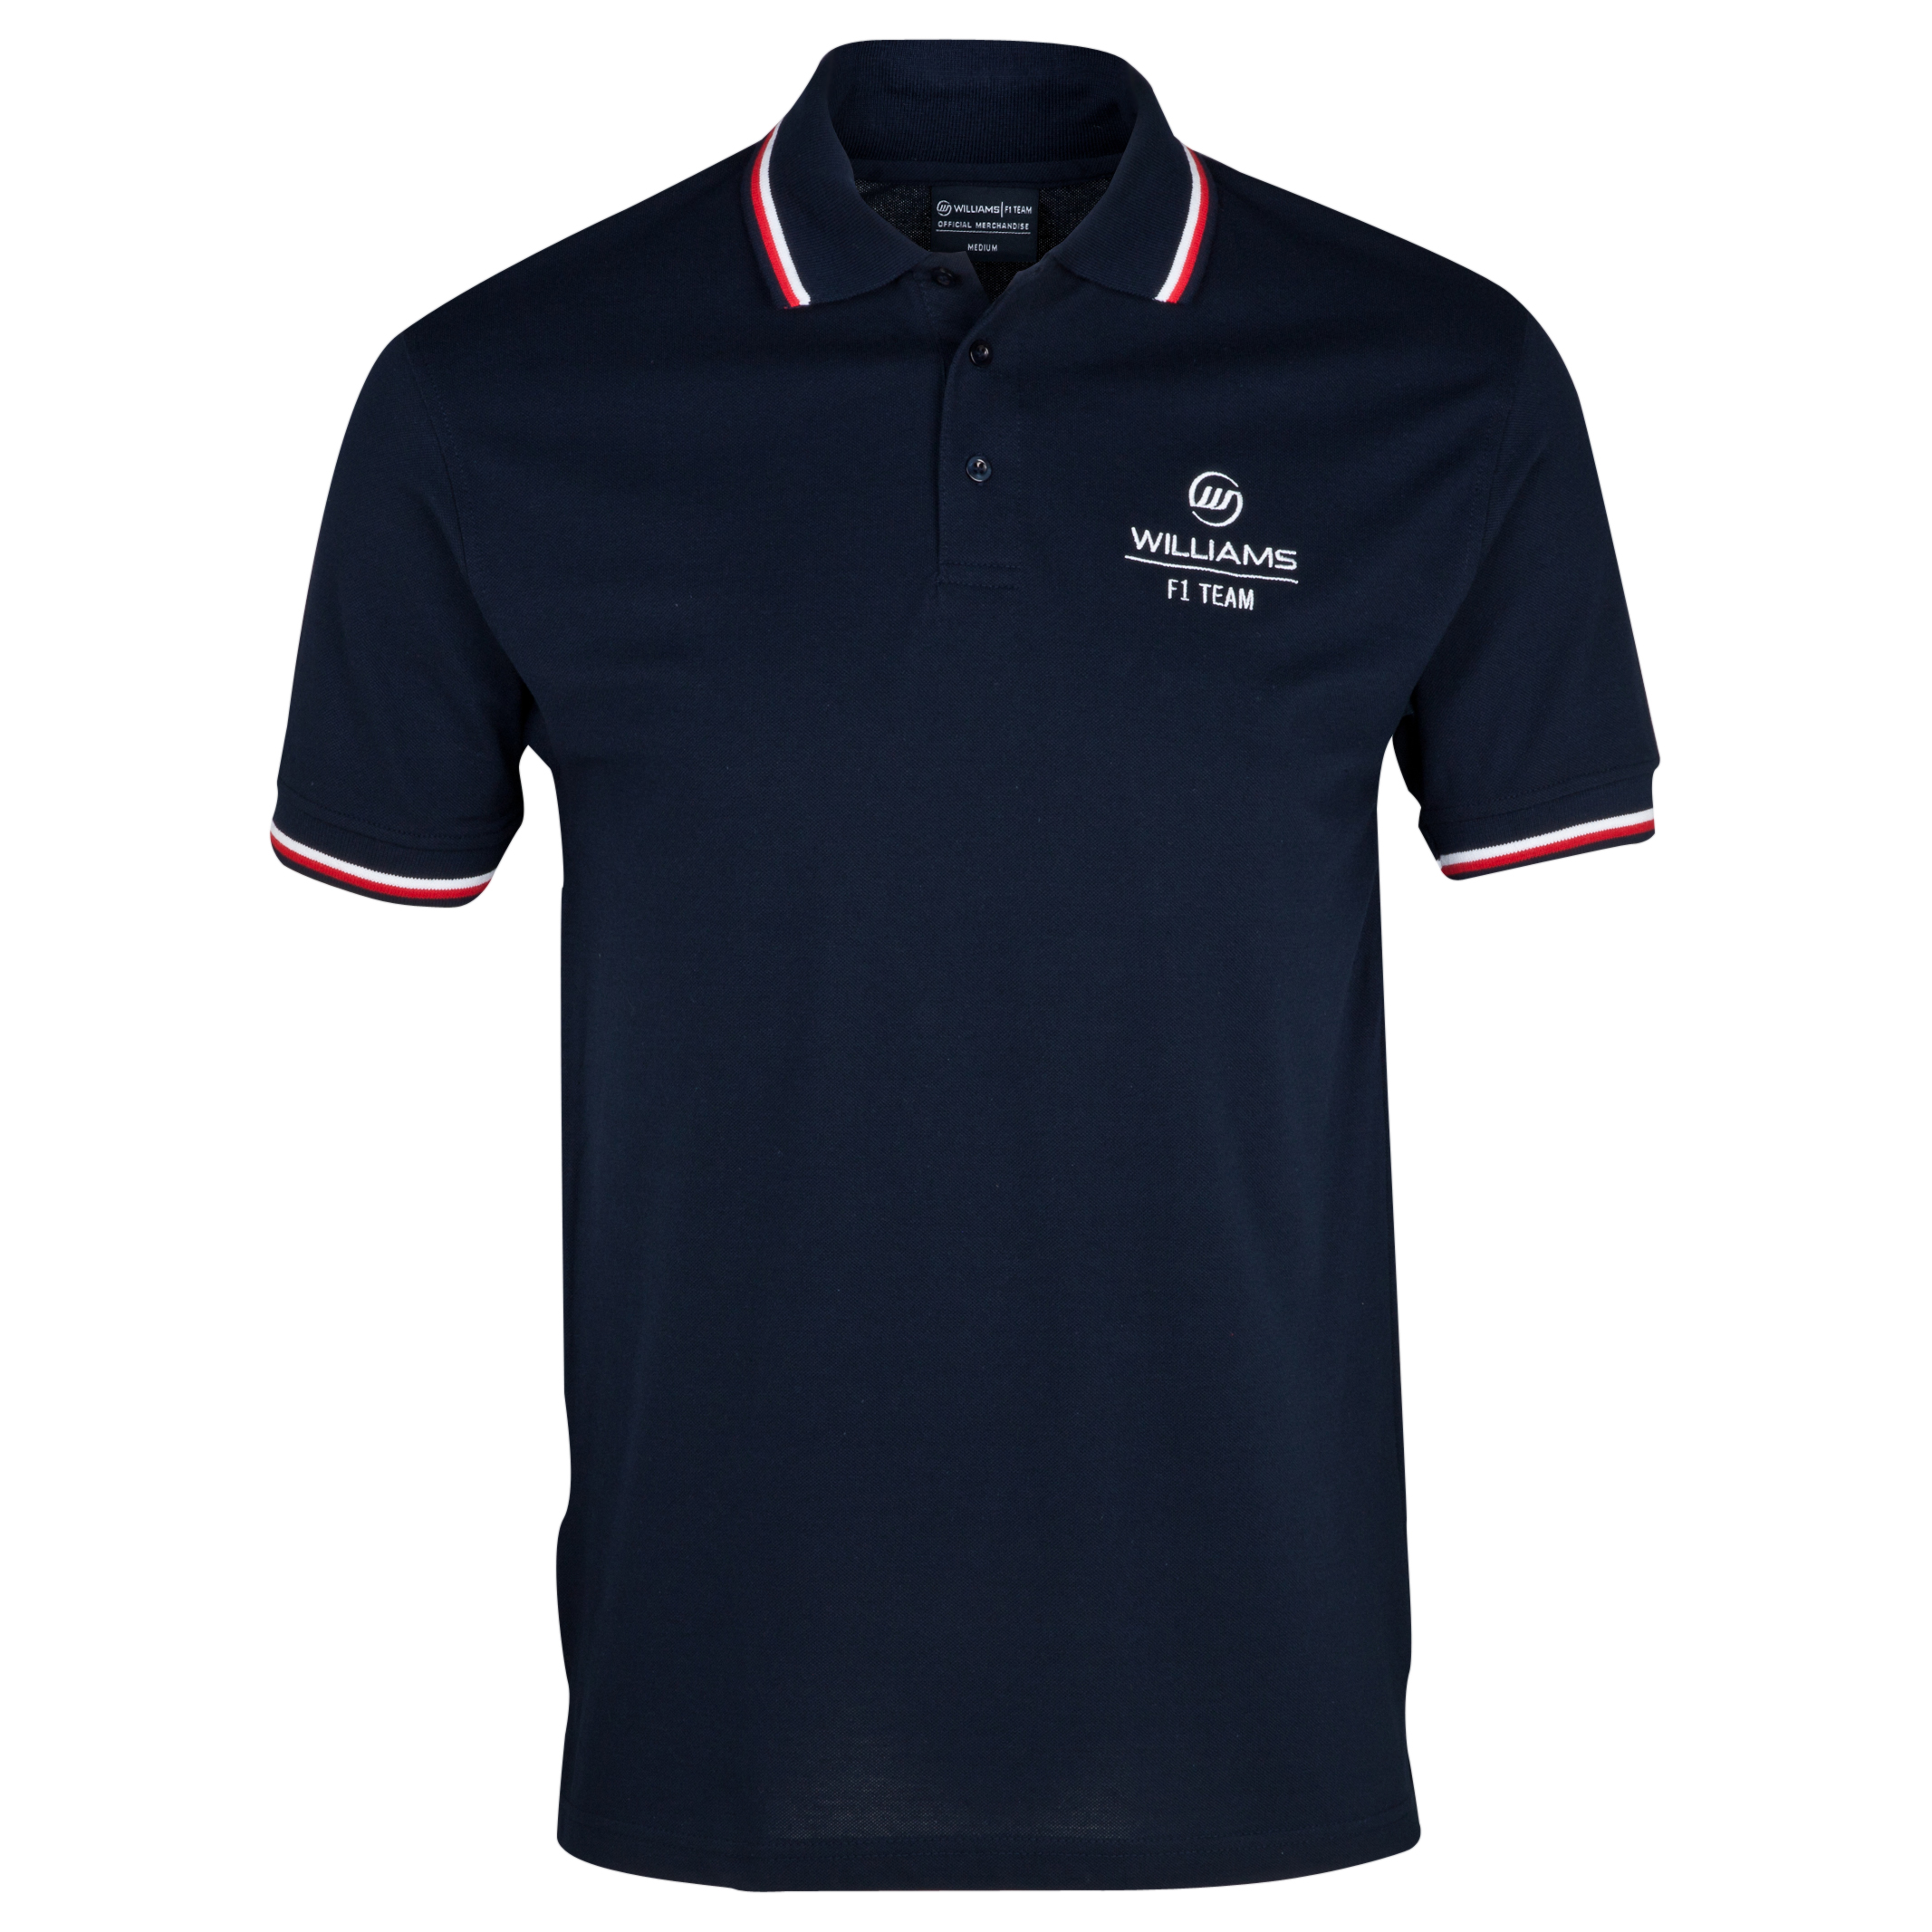 WILLIAMS F1 Team 2013 Replica Polo